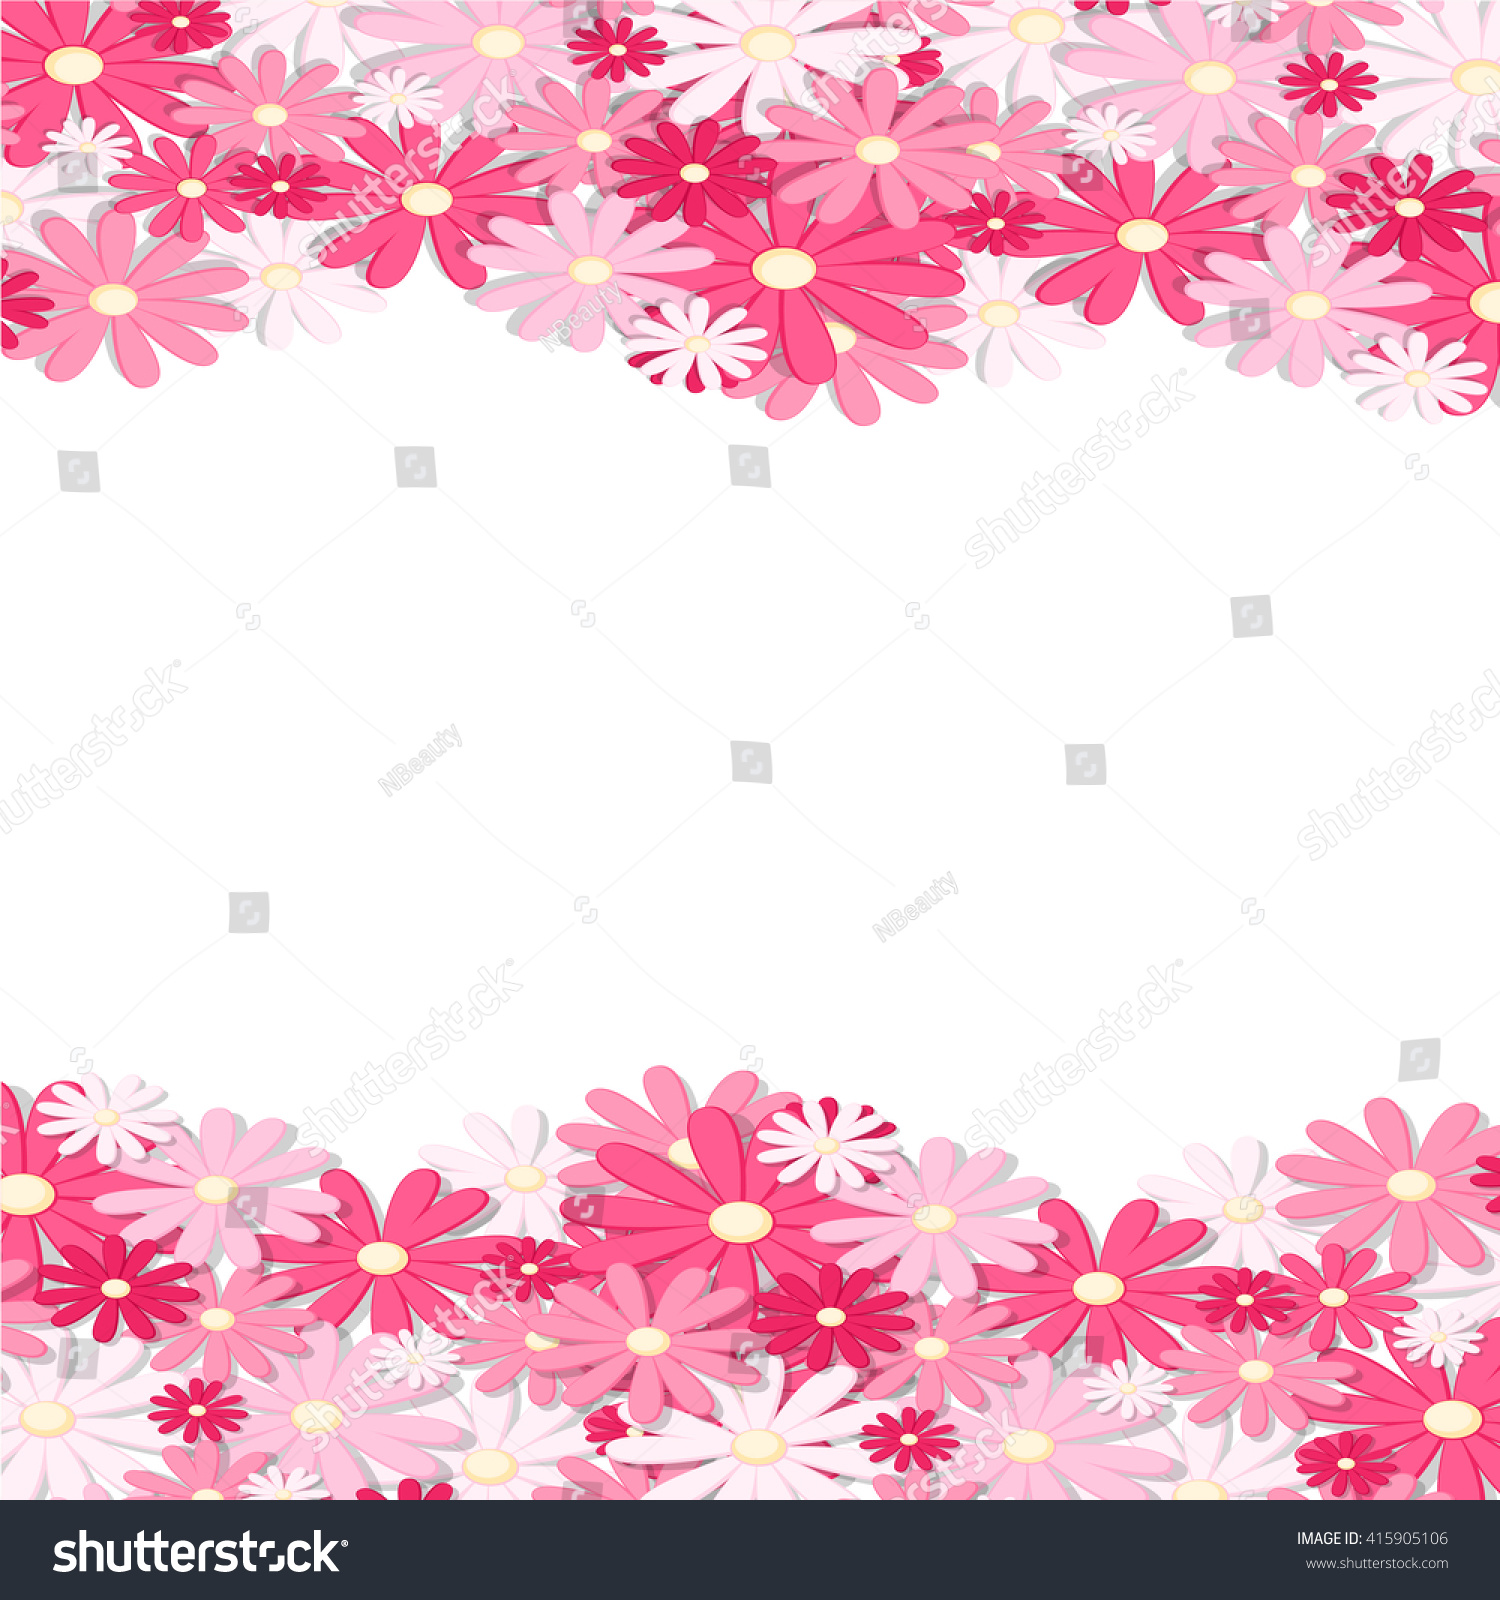 Pink flower border elegant vintage card stock vector 2018 pink flower border elegant vintage card design floral wallpaper horizontally seamless pattern mightylinksfo Images